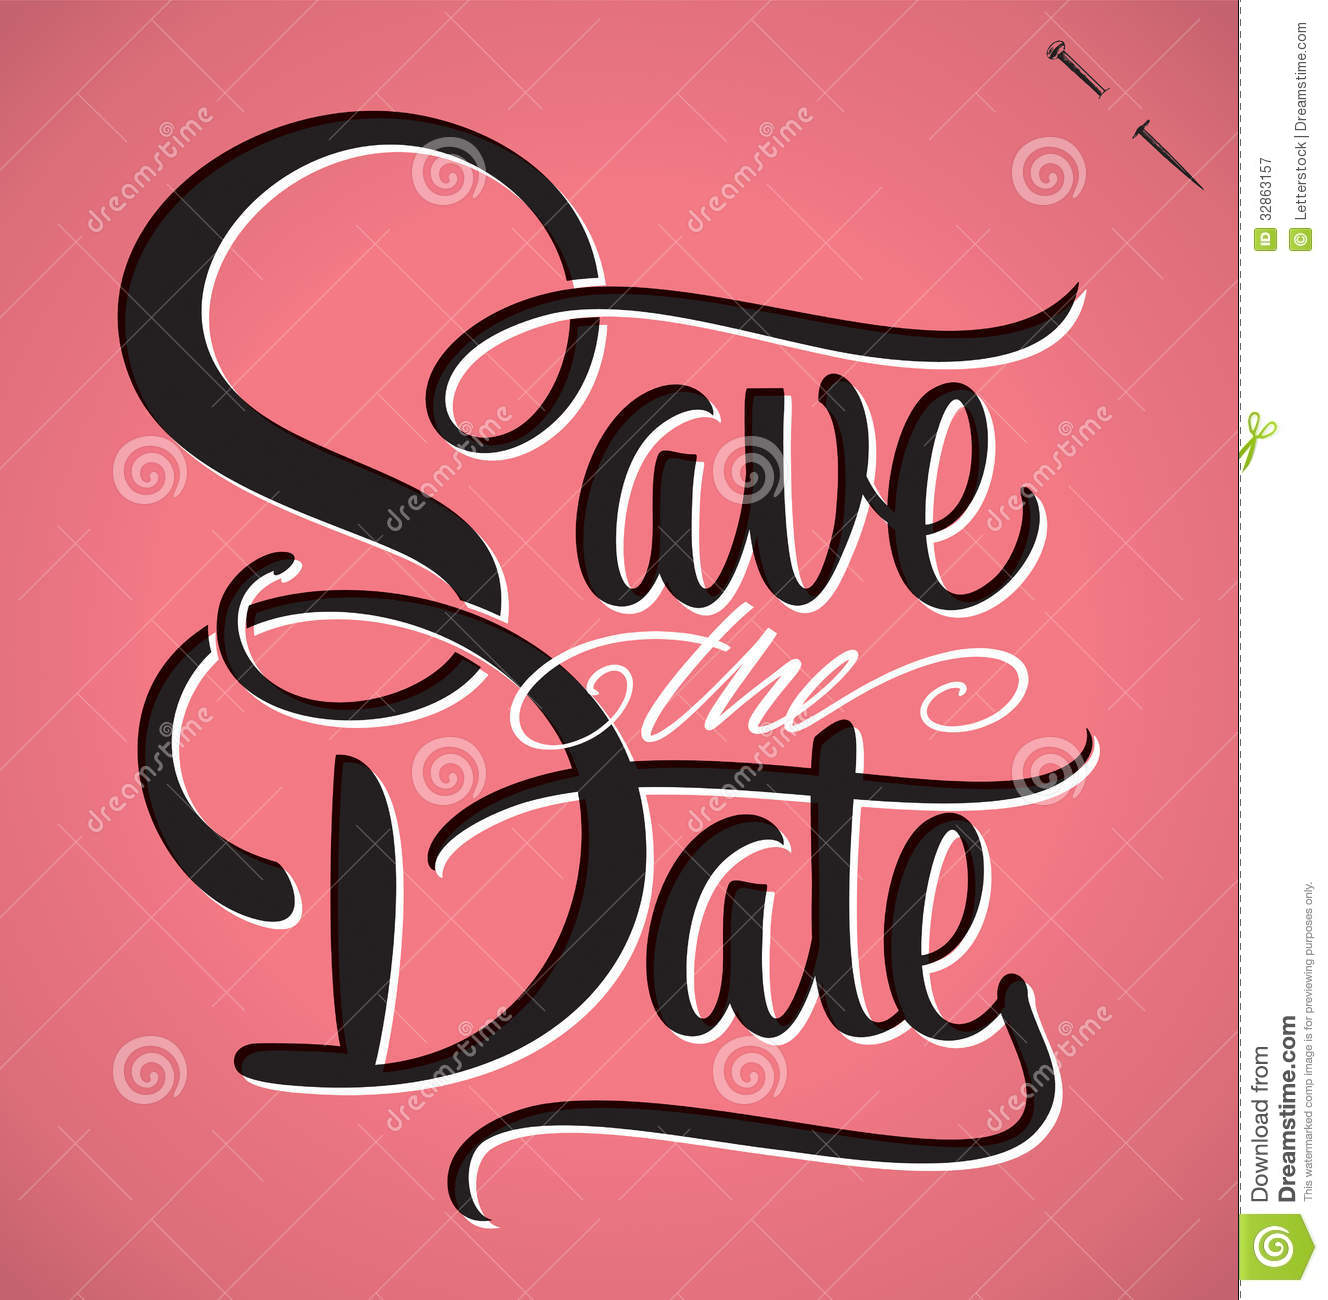 Save The Date Hand Lettering Vector Royalty Free Stock